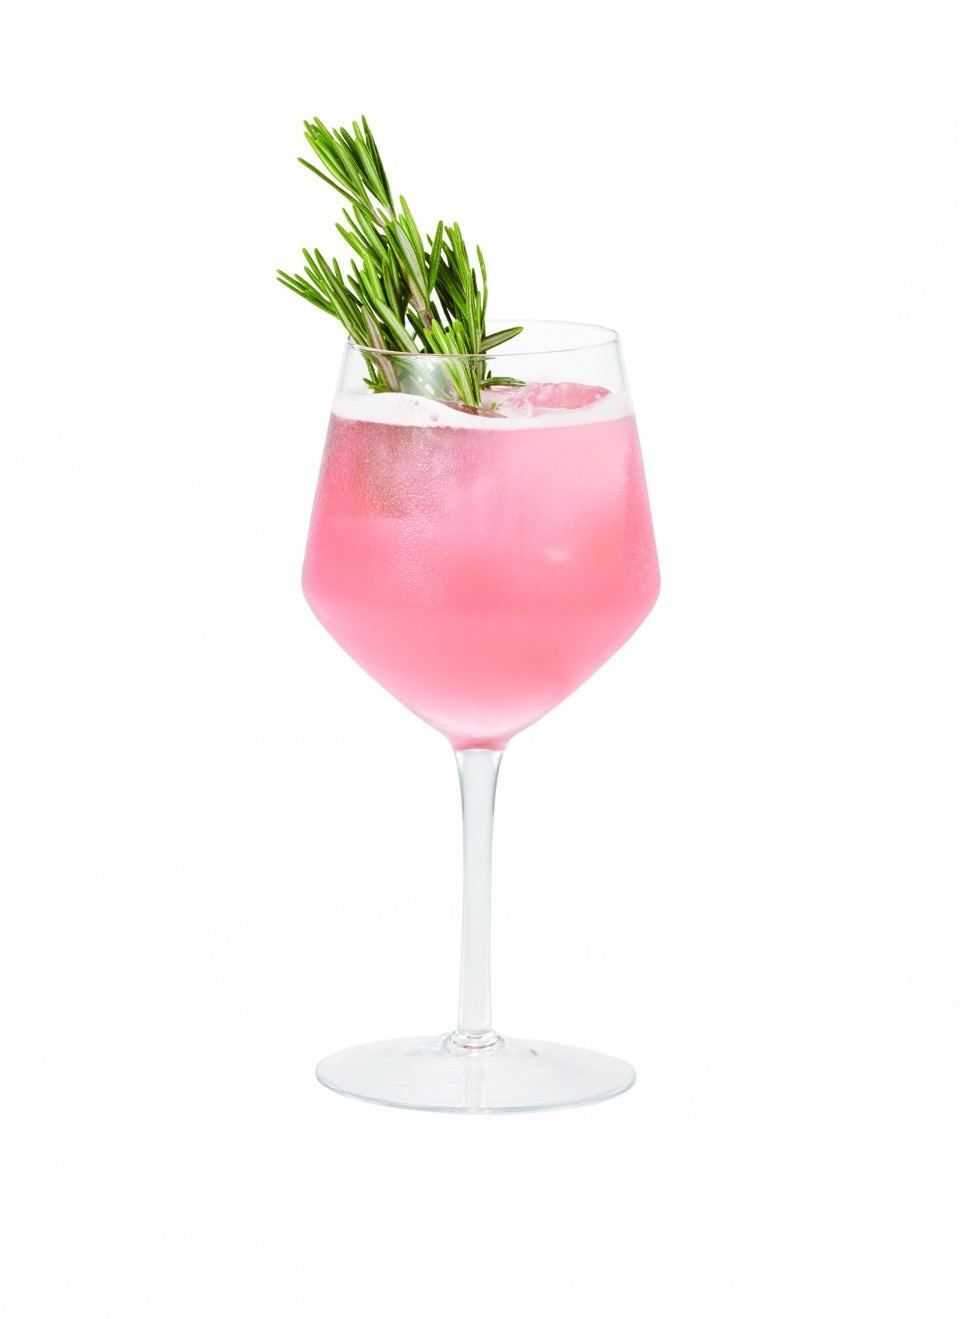 Fresh herbs are often used in summer drinks like the Rosemary's Garden, made with passion fruit and cranberry liqueur, gin, sparkling wine and rosemary.